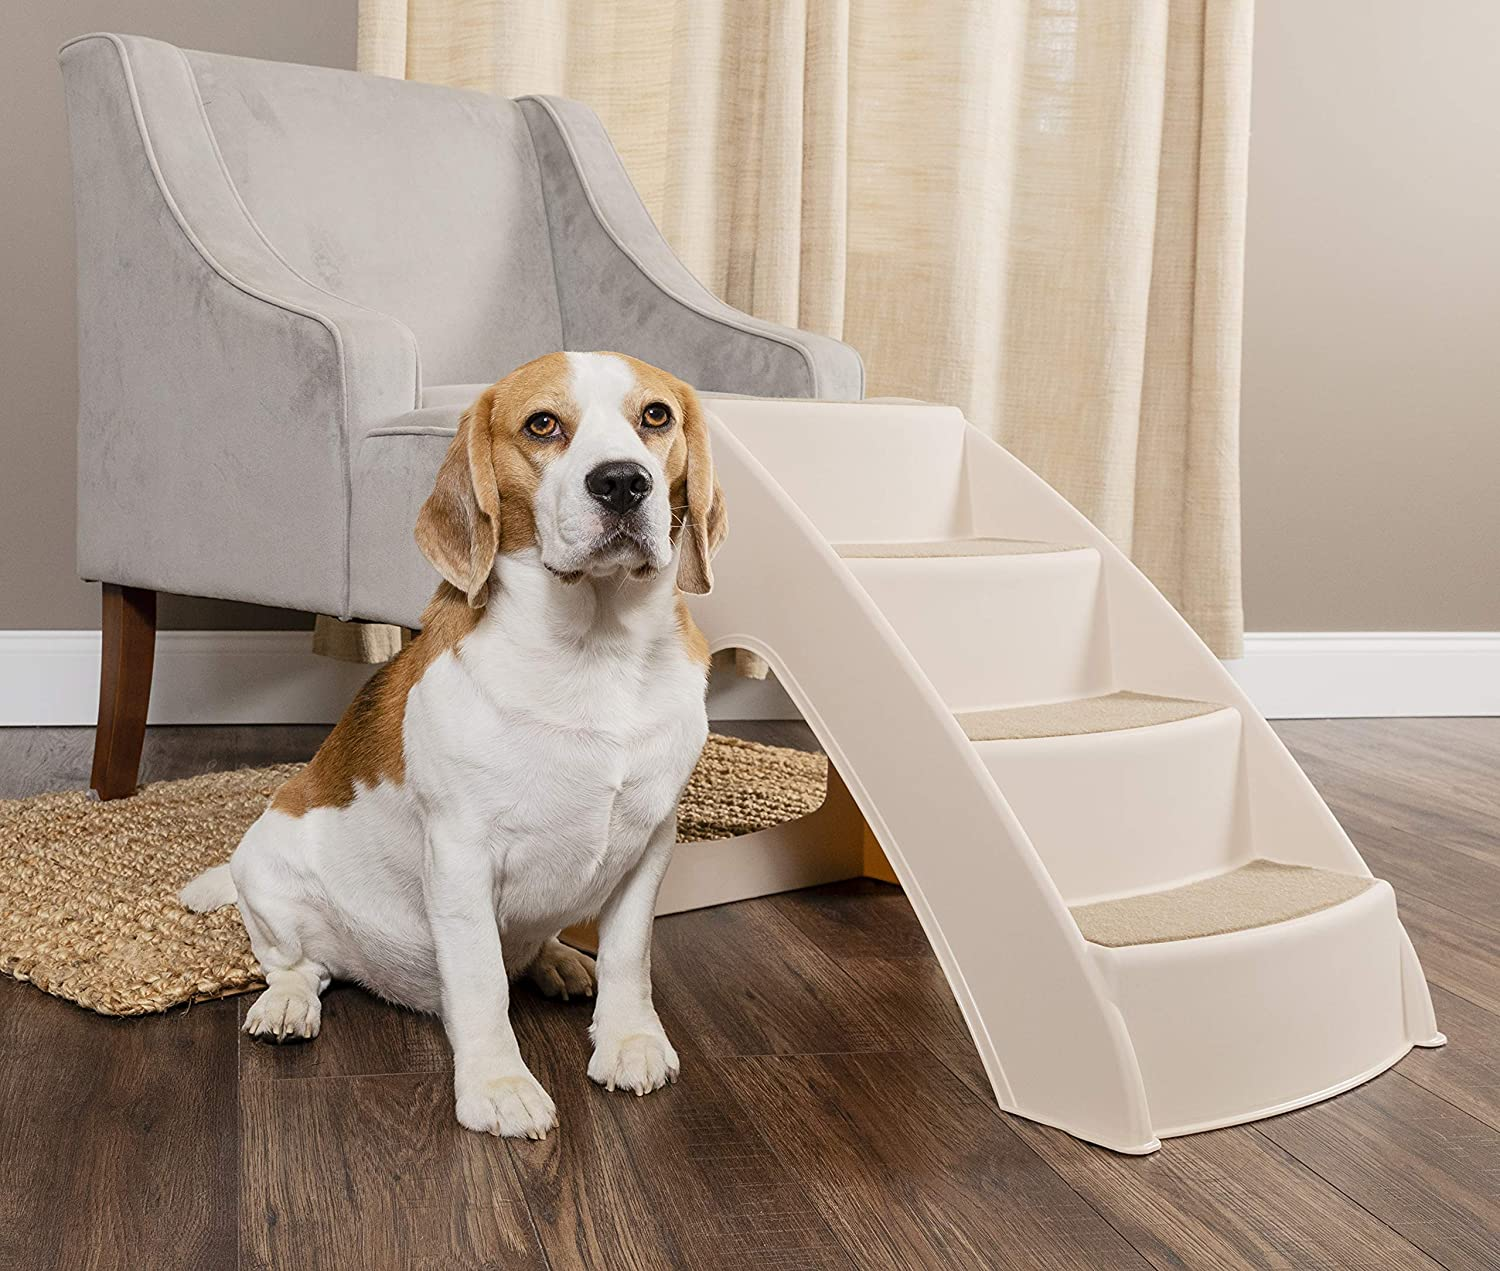 PetSafe CozyUp Pet Steps - PupSTEP Dog and Cat Stairs - Lightweight Durable Plastic Frame Supports up to 70 lb - Side Rails and Non-slip Feet Provide Added Security : Pet Supplies